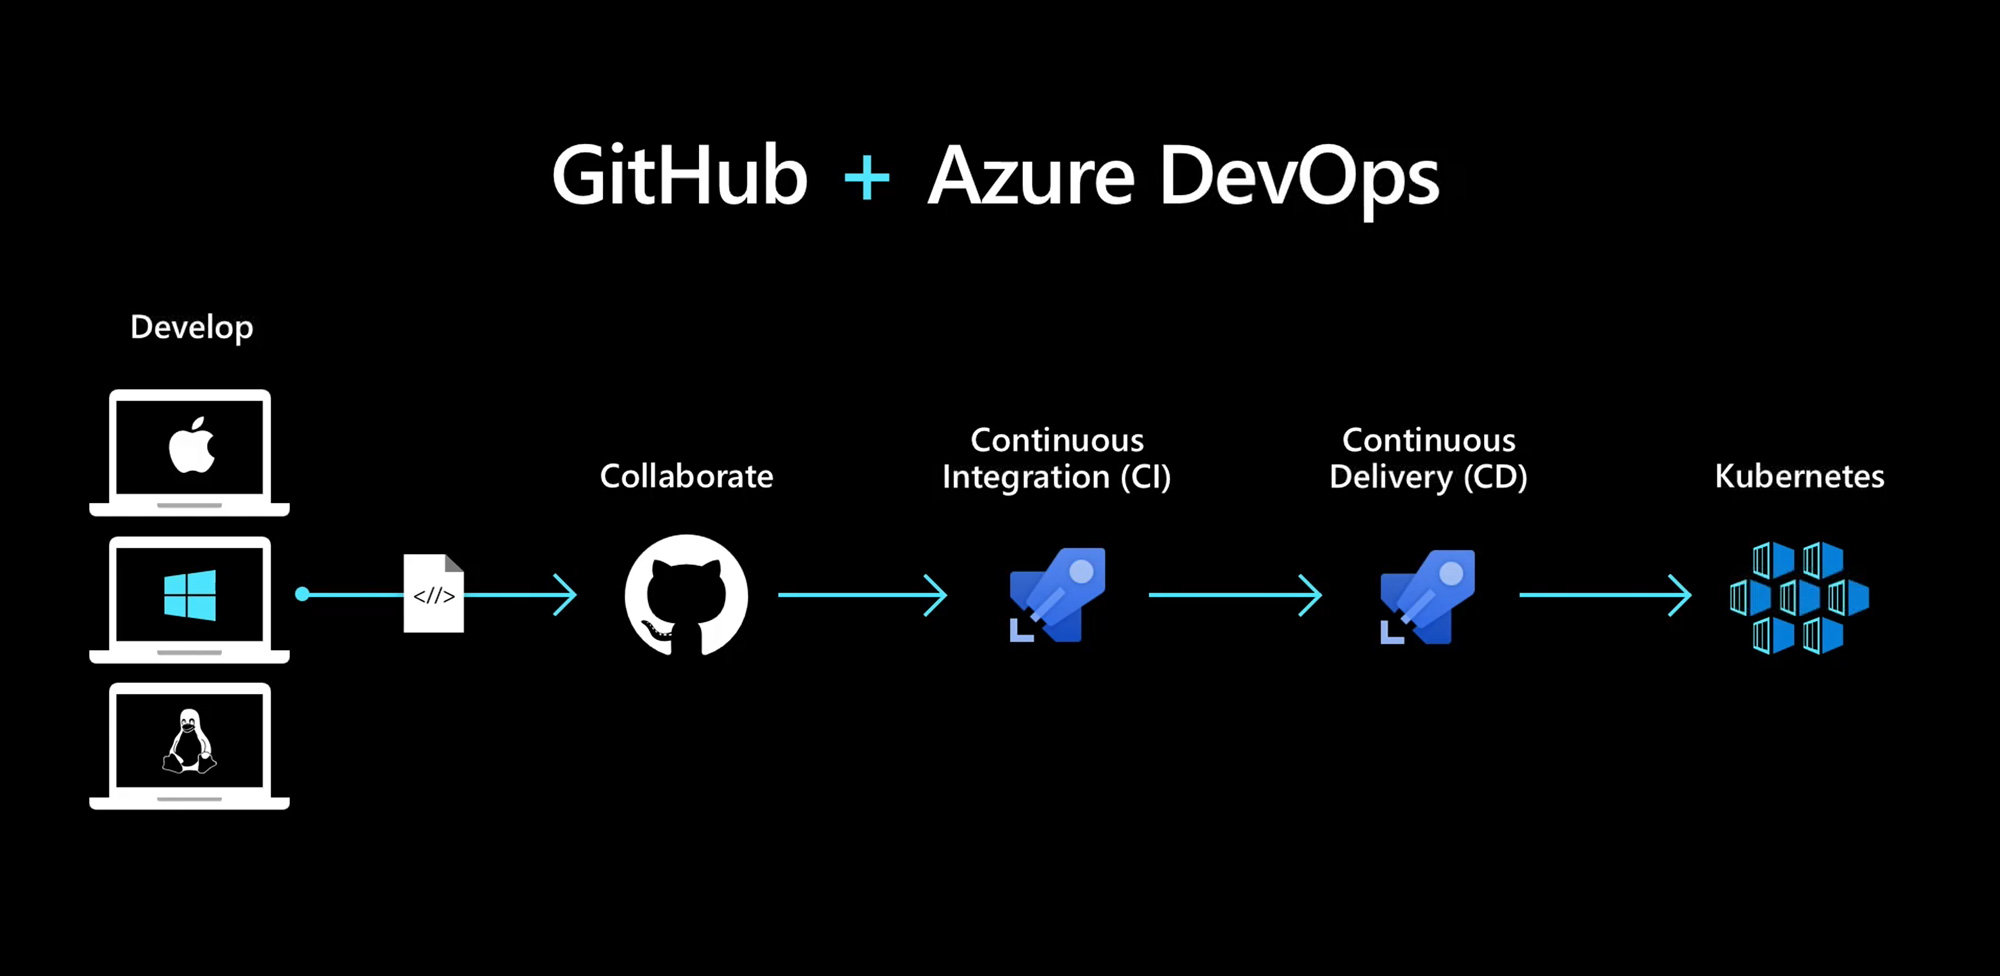 Today's Microsoft is Open - GitHub has become an integral part of Azure DevOps pipeline